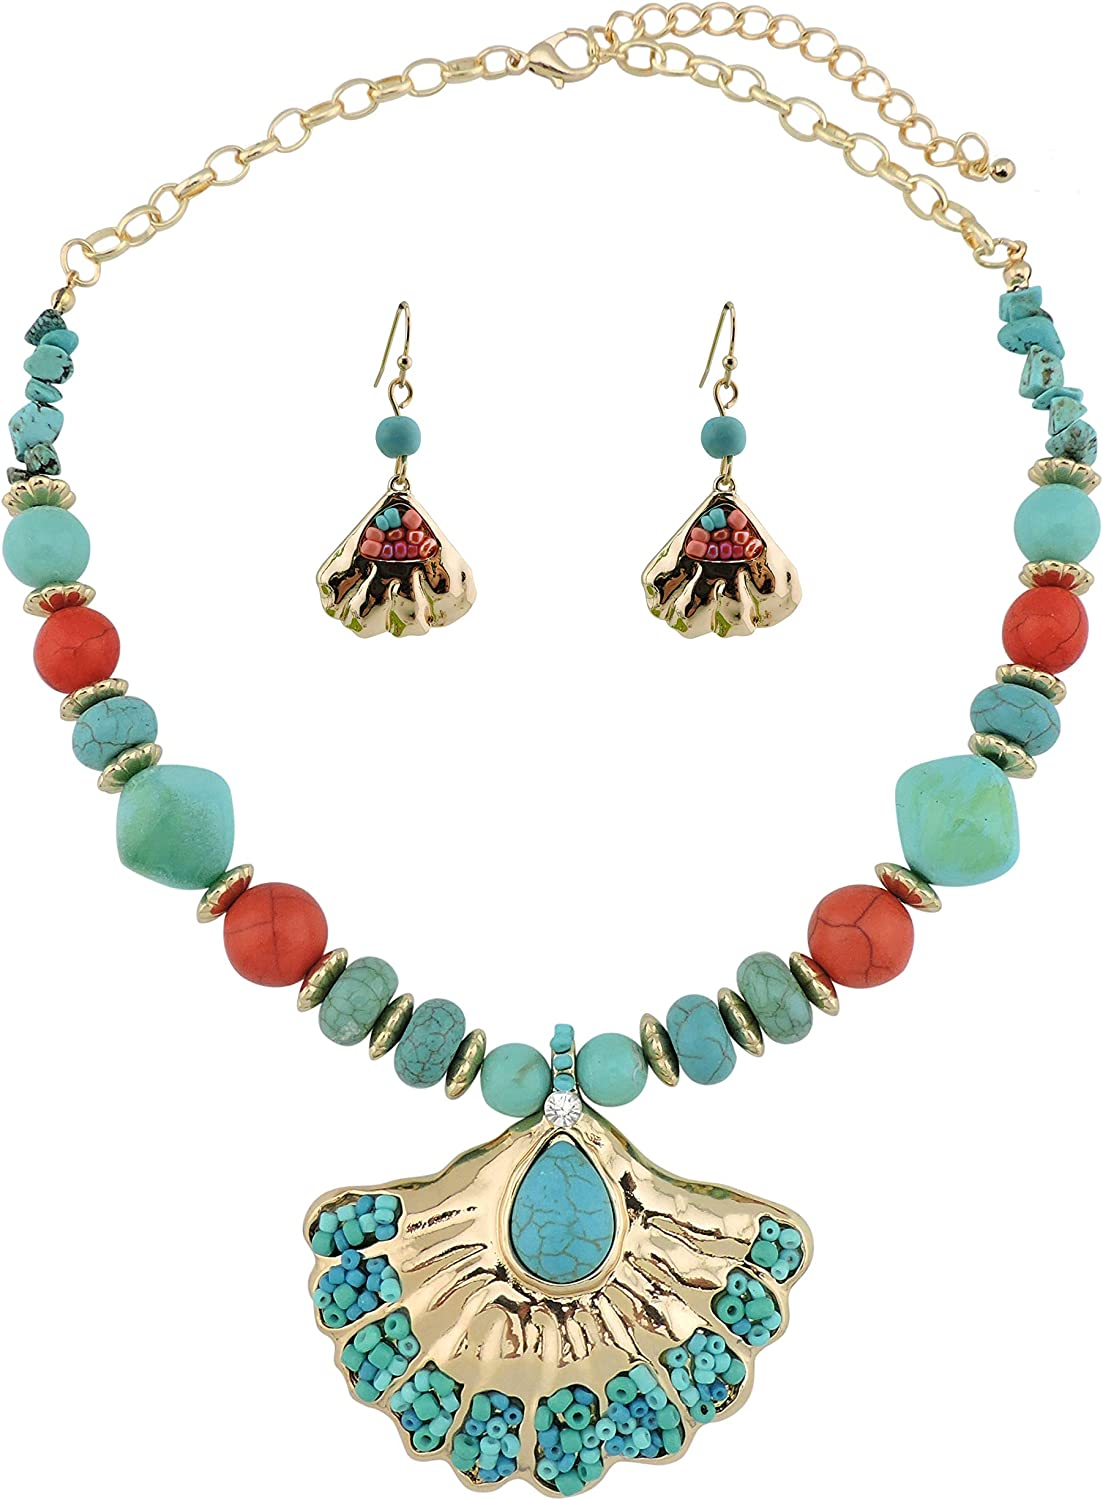 COIRIS Turquoise Beads Necklace Earring with Sea Shell Pendant Fashion Collar jewelry Set (N0056)